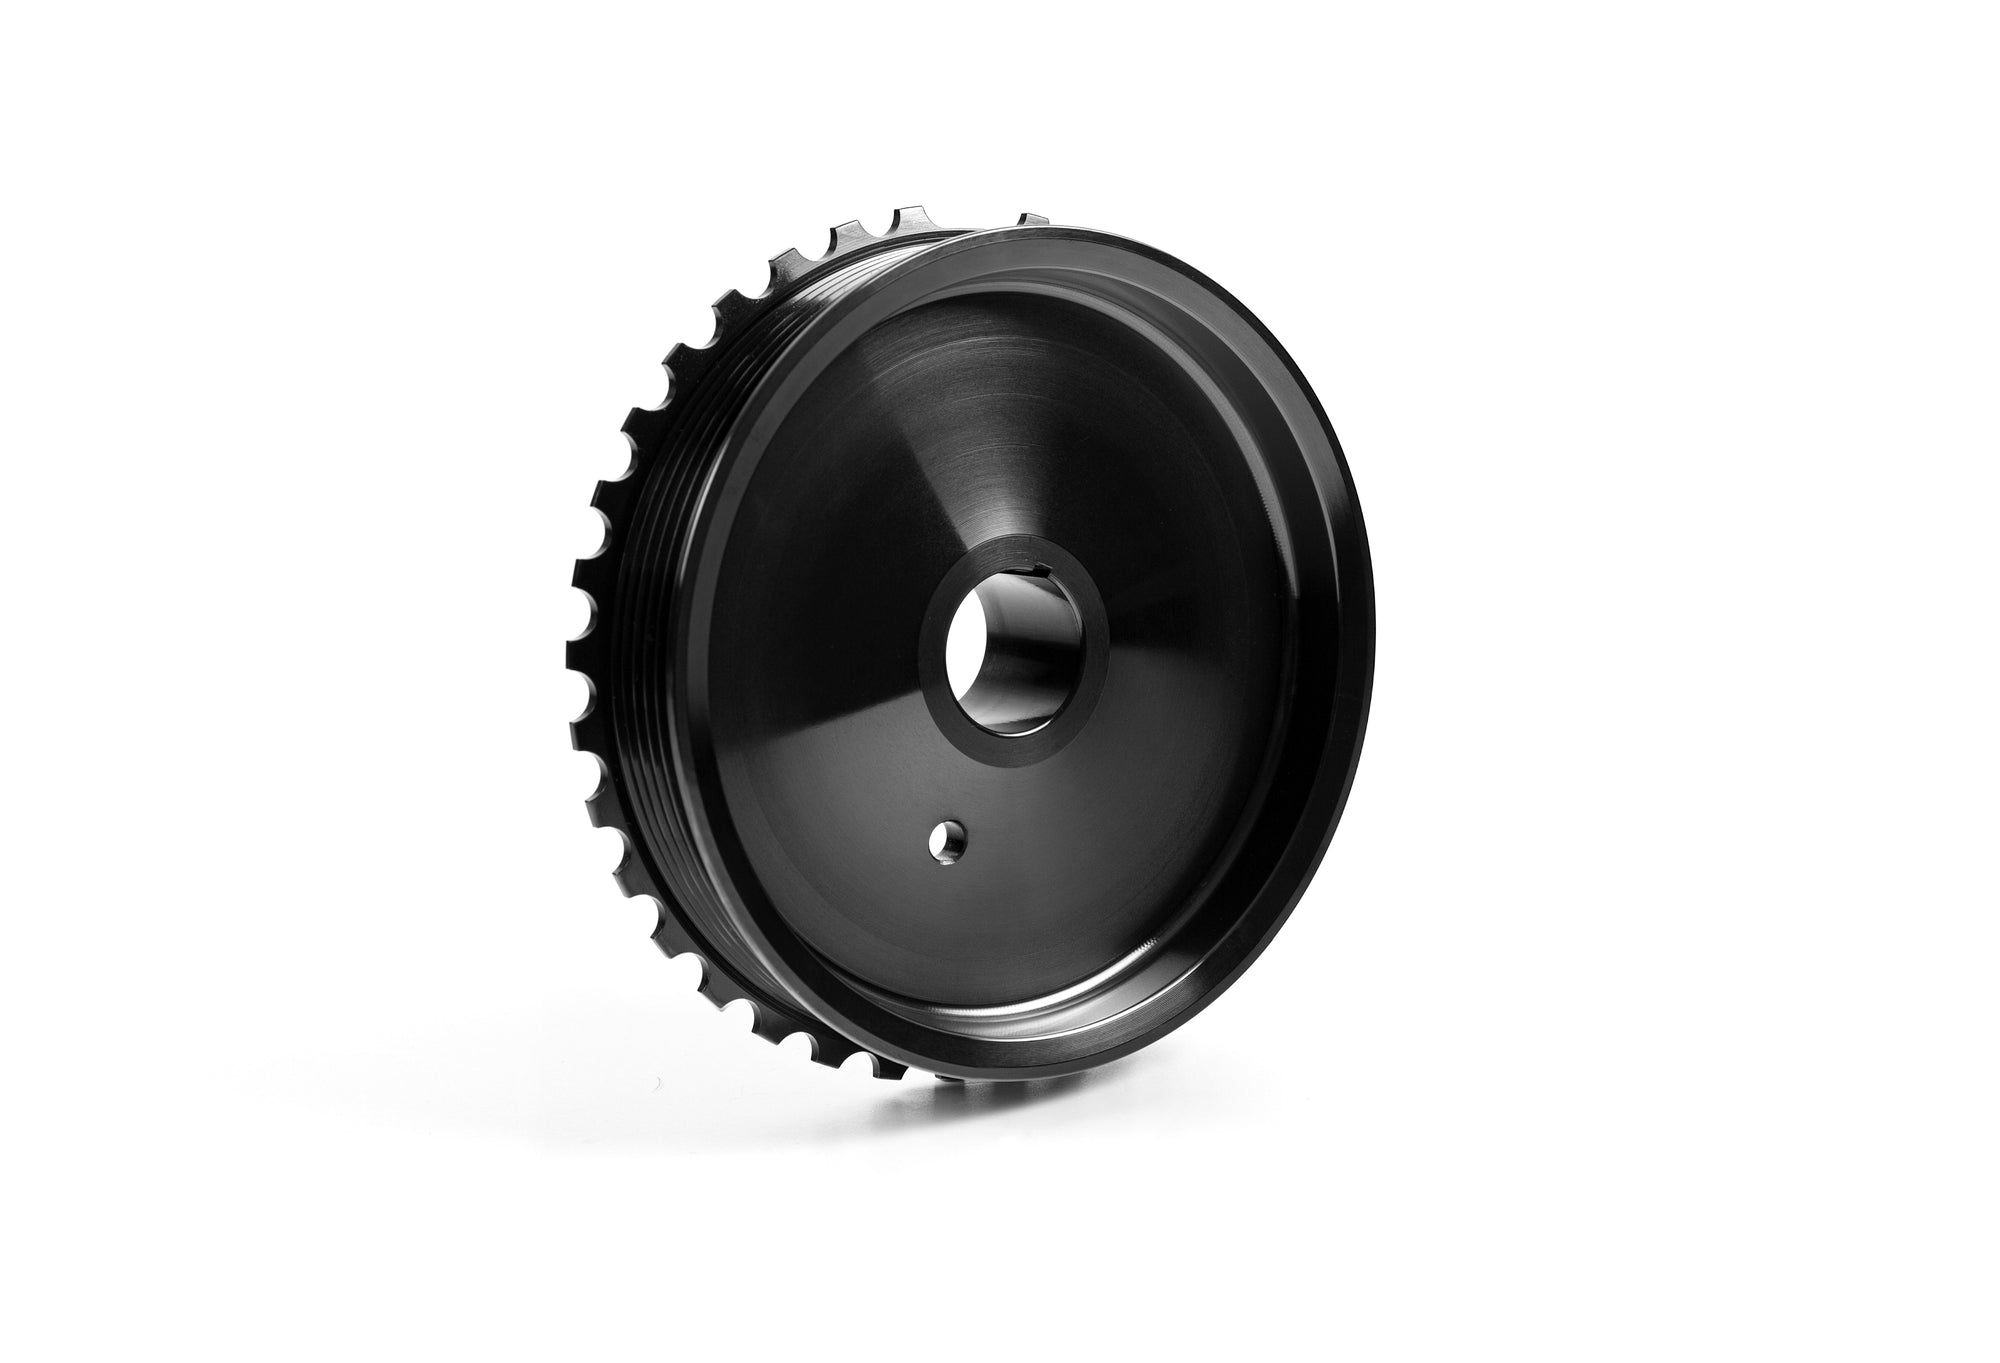 Duratec 2.0 Solid Crank Pulley